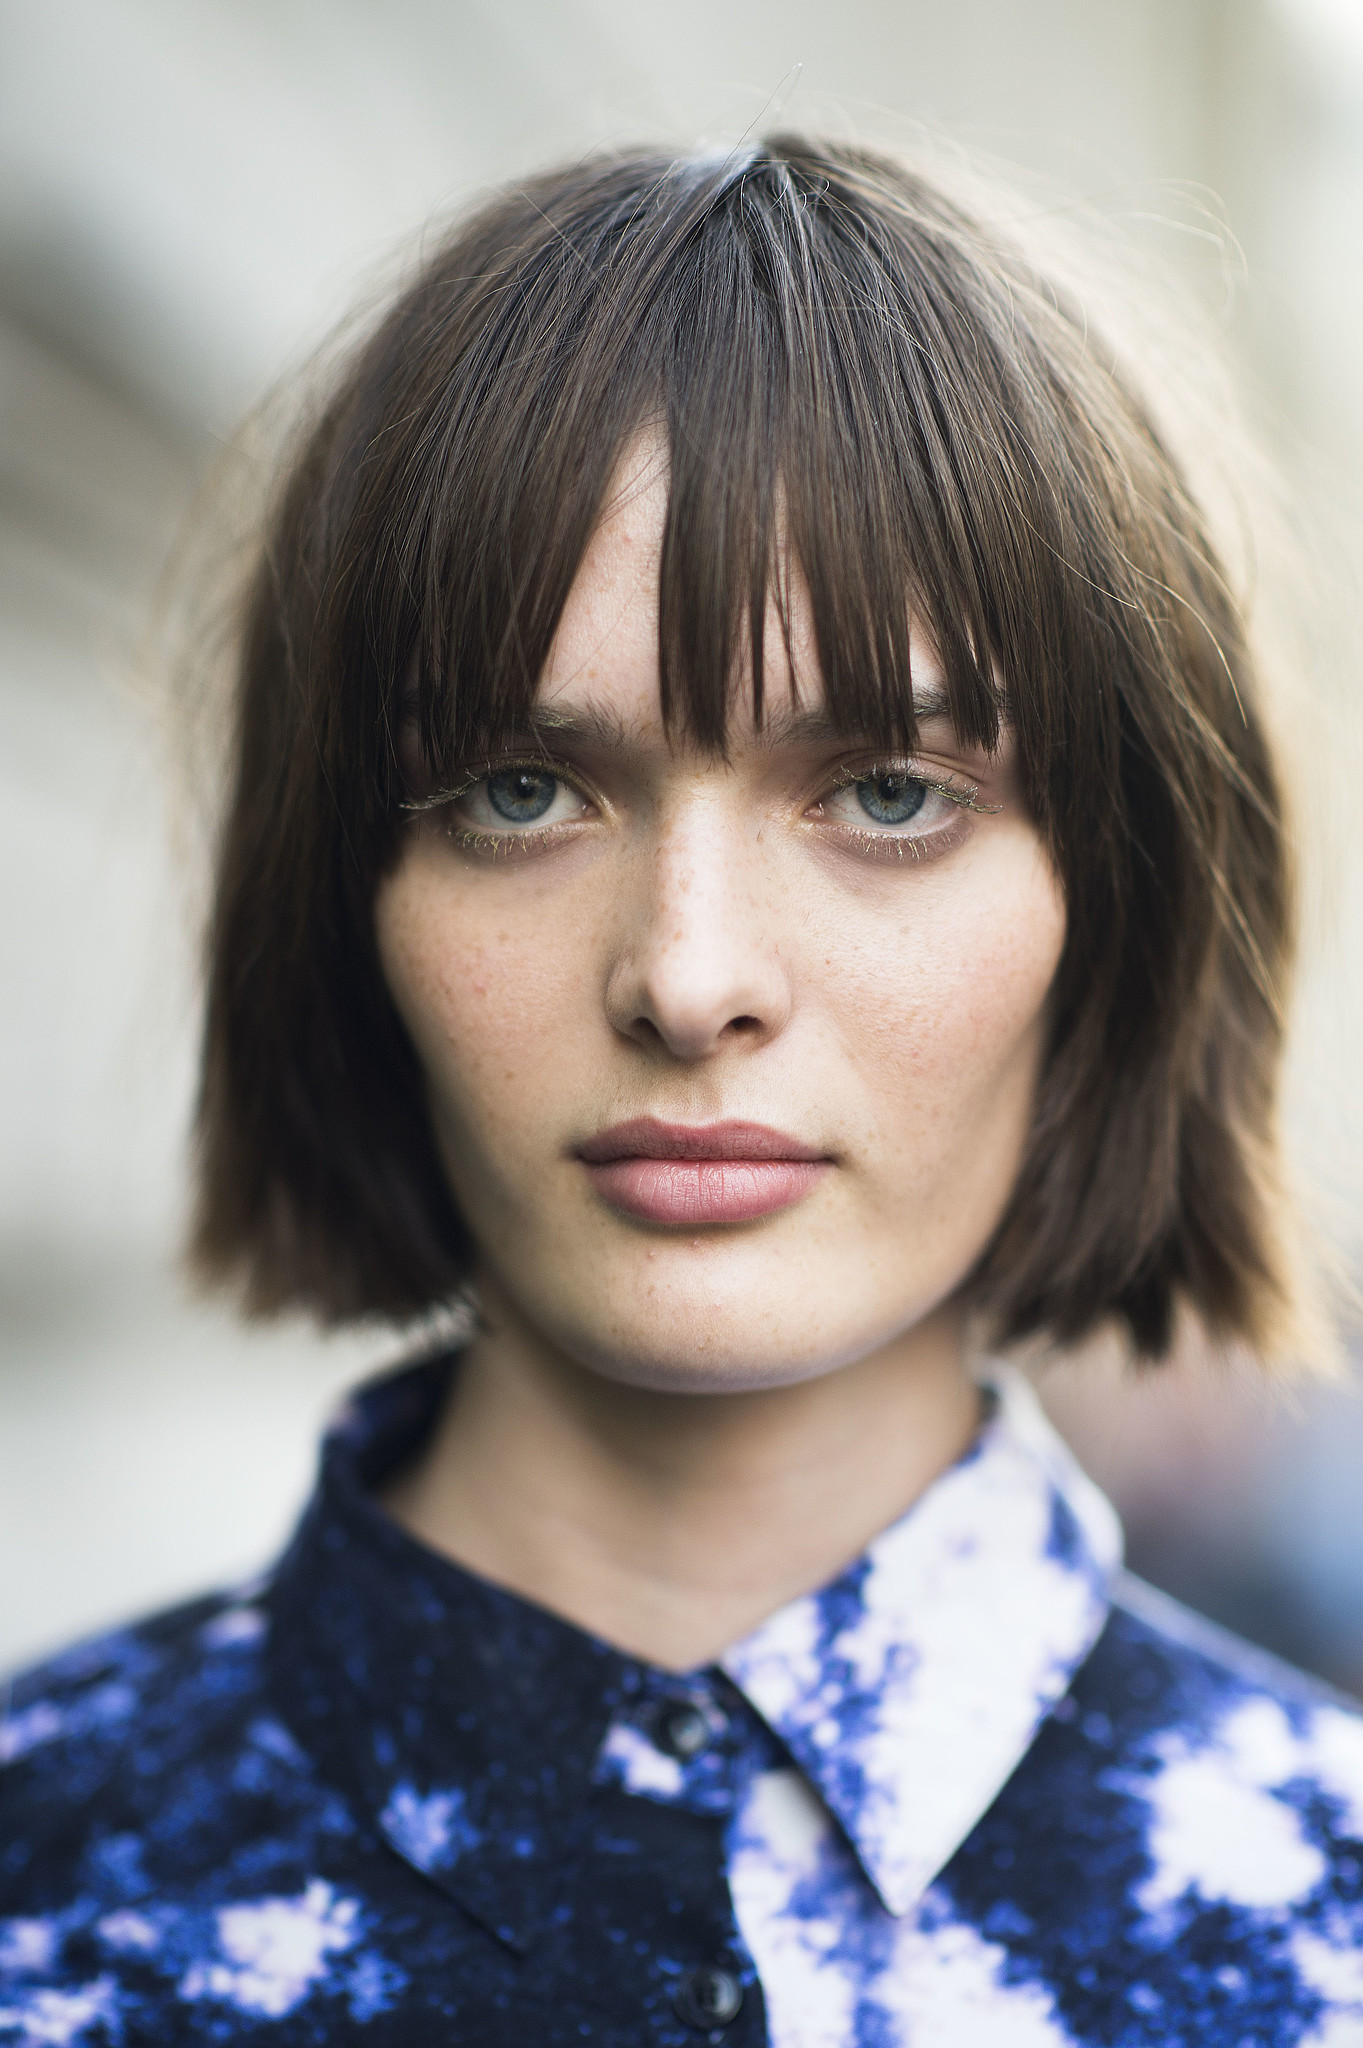 It seems even Parisian ladies have jumped on the blunt bob trend for Fall. Source: Le 21ème | Adam Katz Sinding